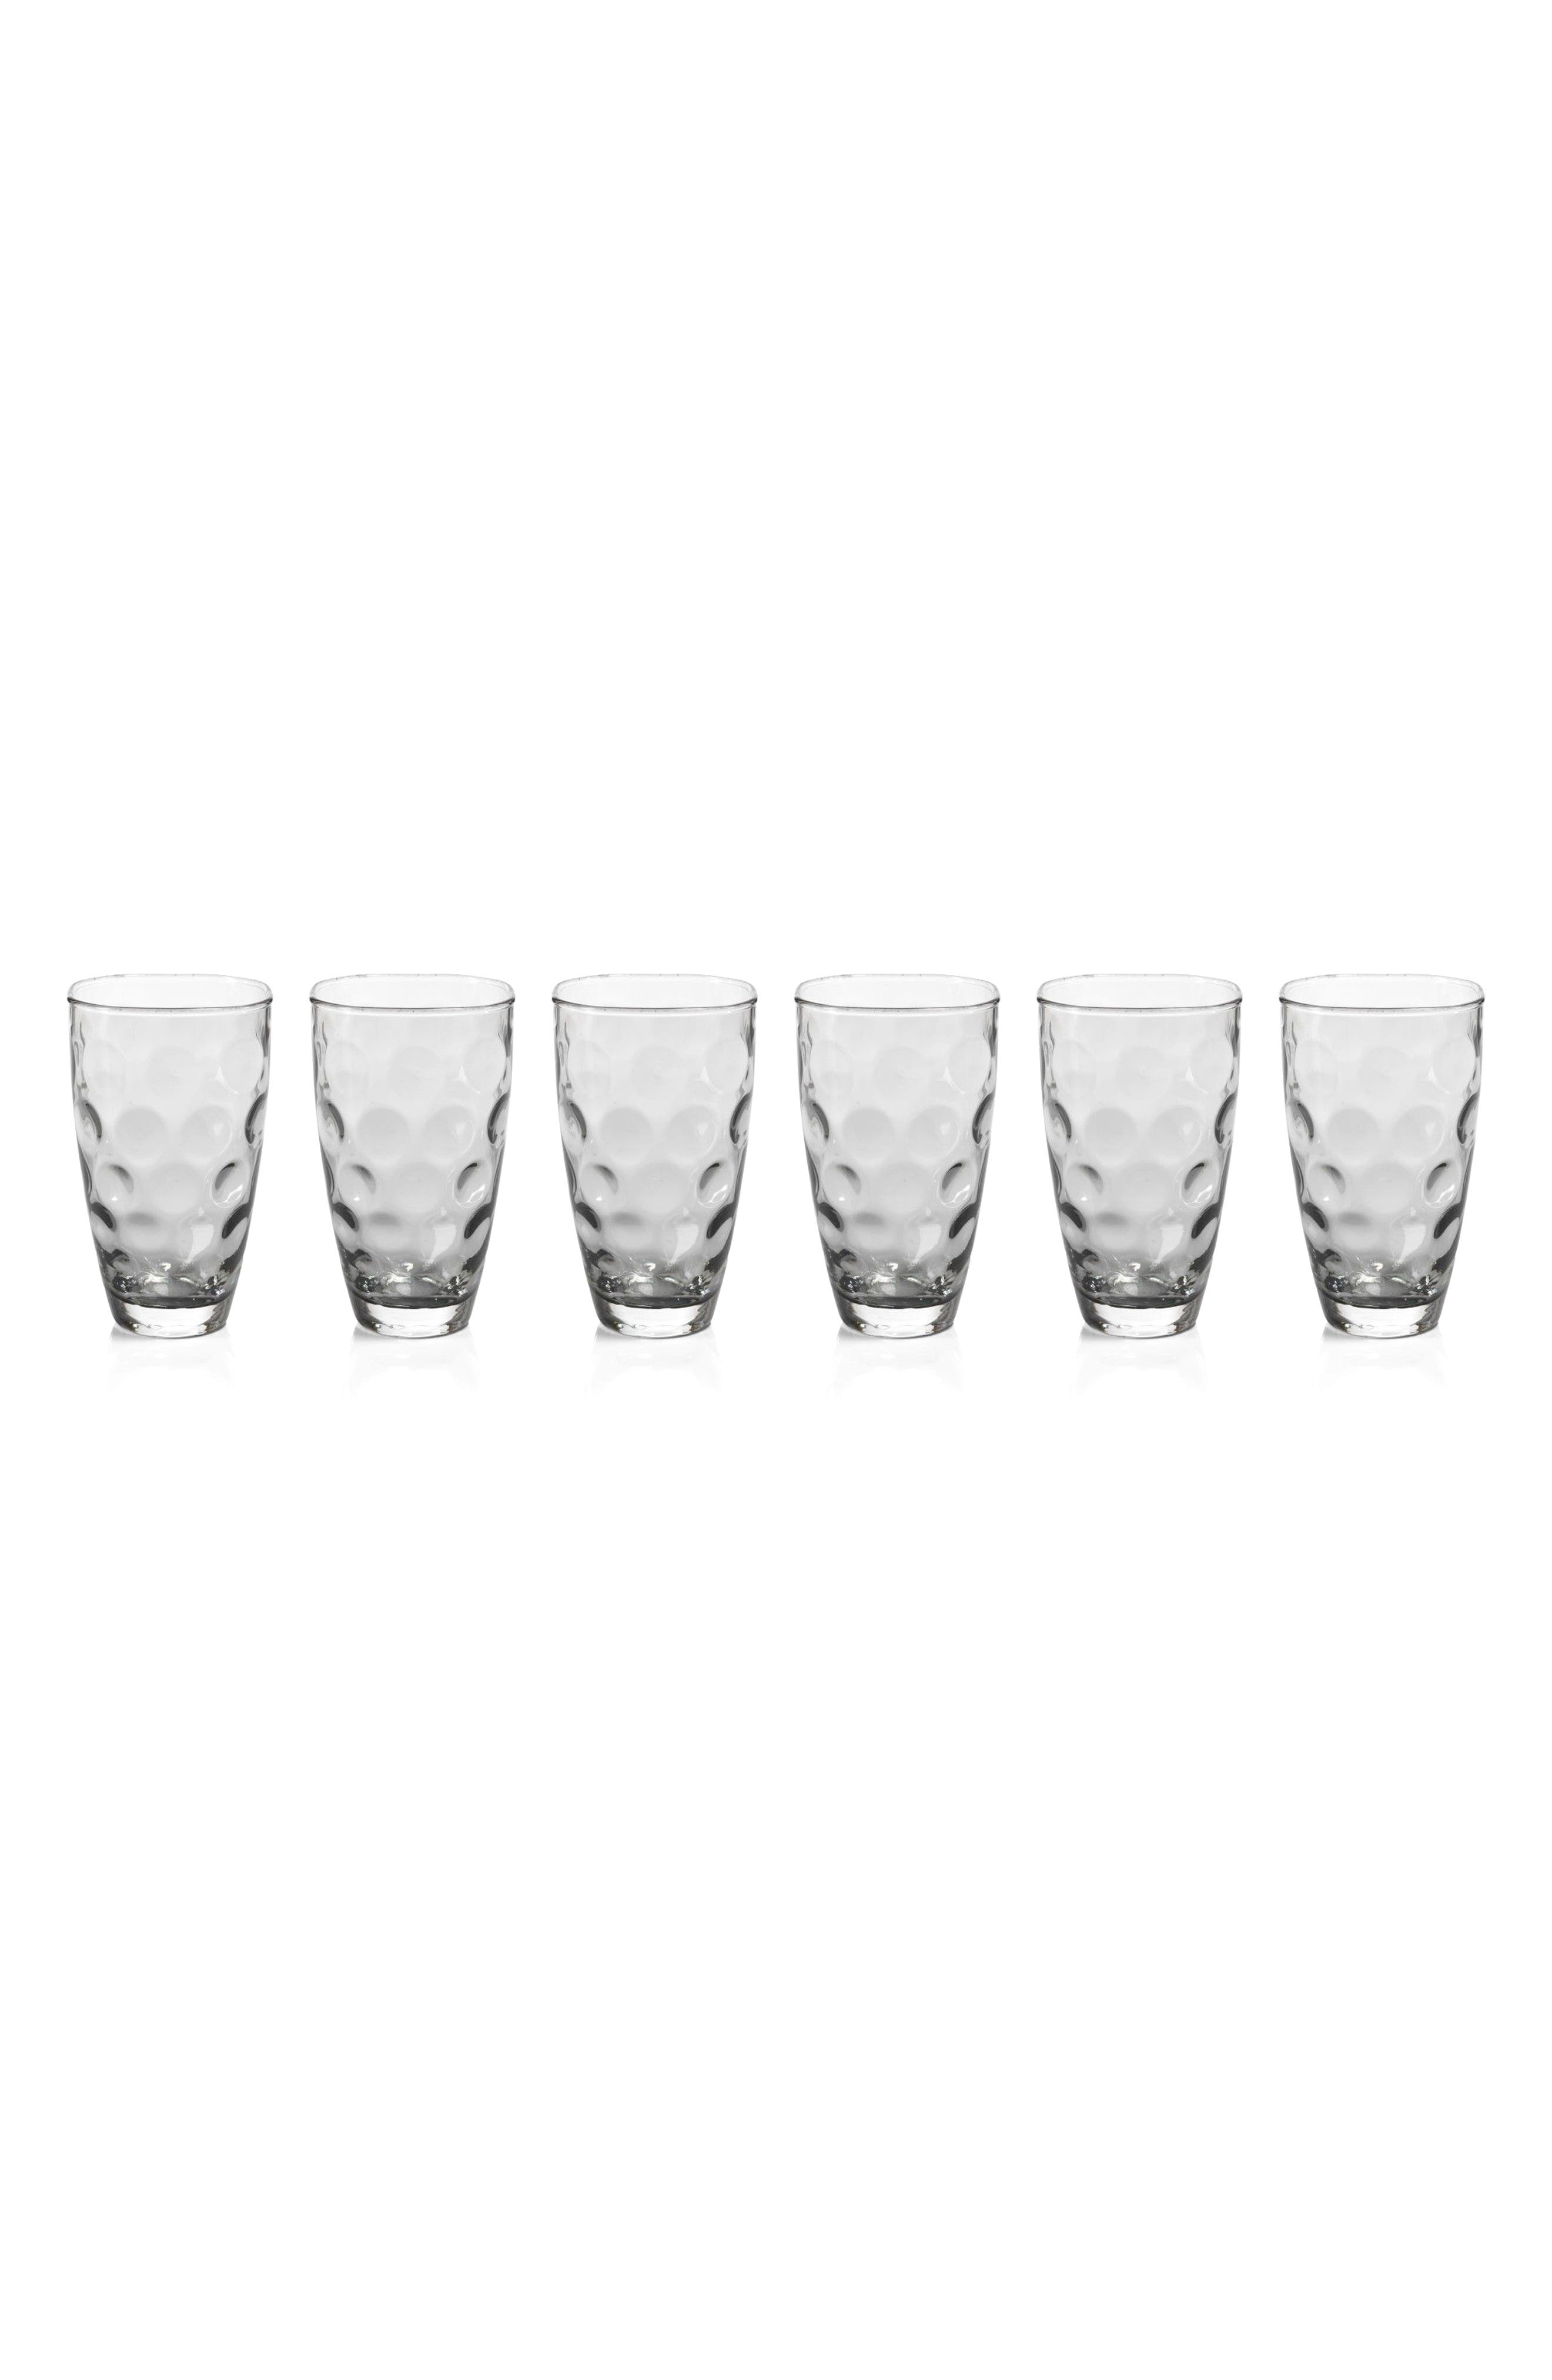 Dimpled Set of 6 Highball Glasses,                             Main thumbnail 1, color,                             Clear/ Grey